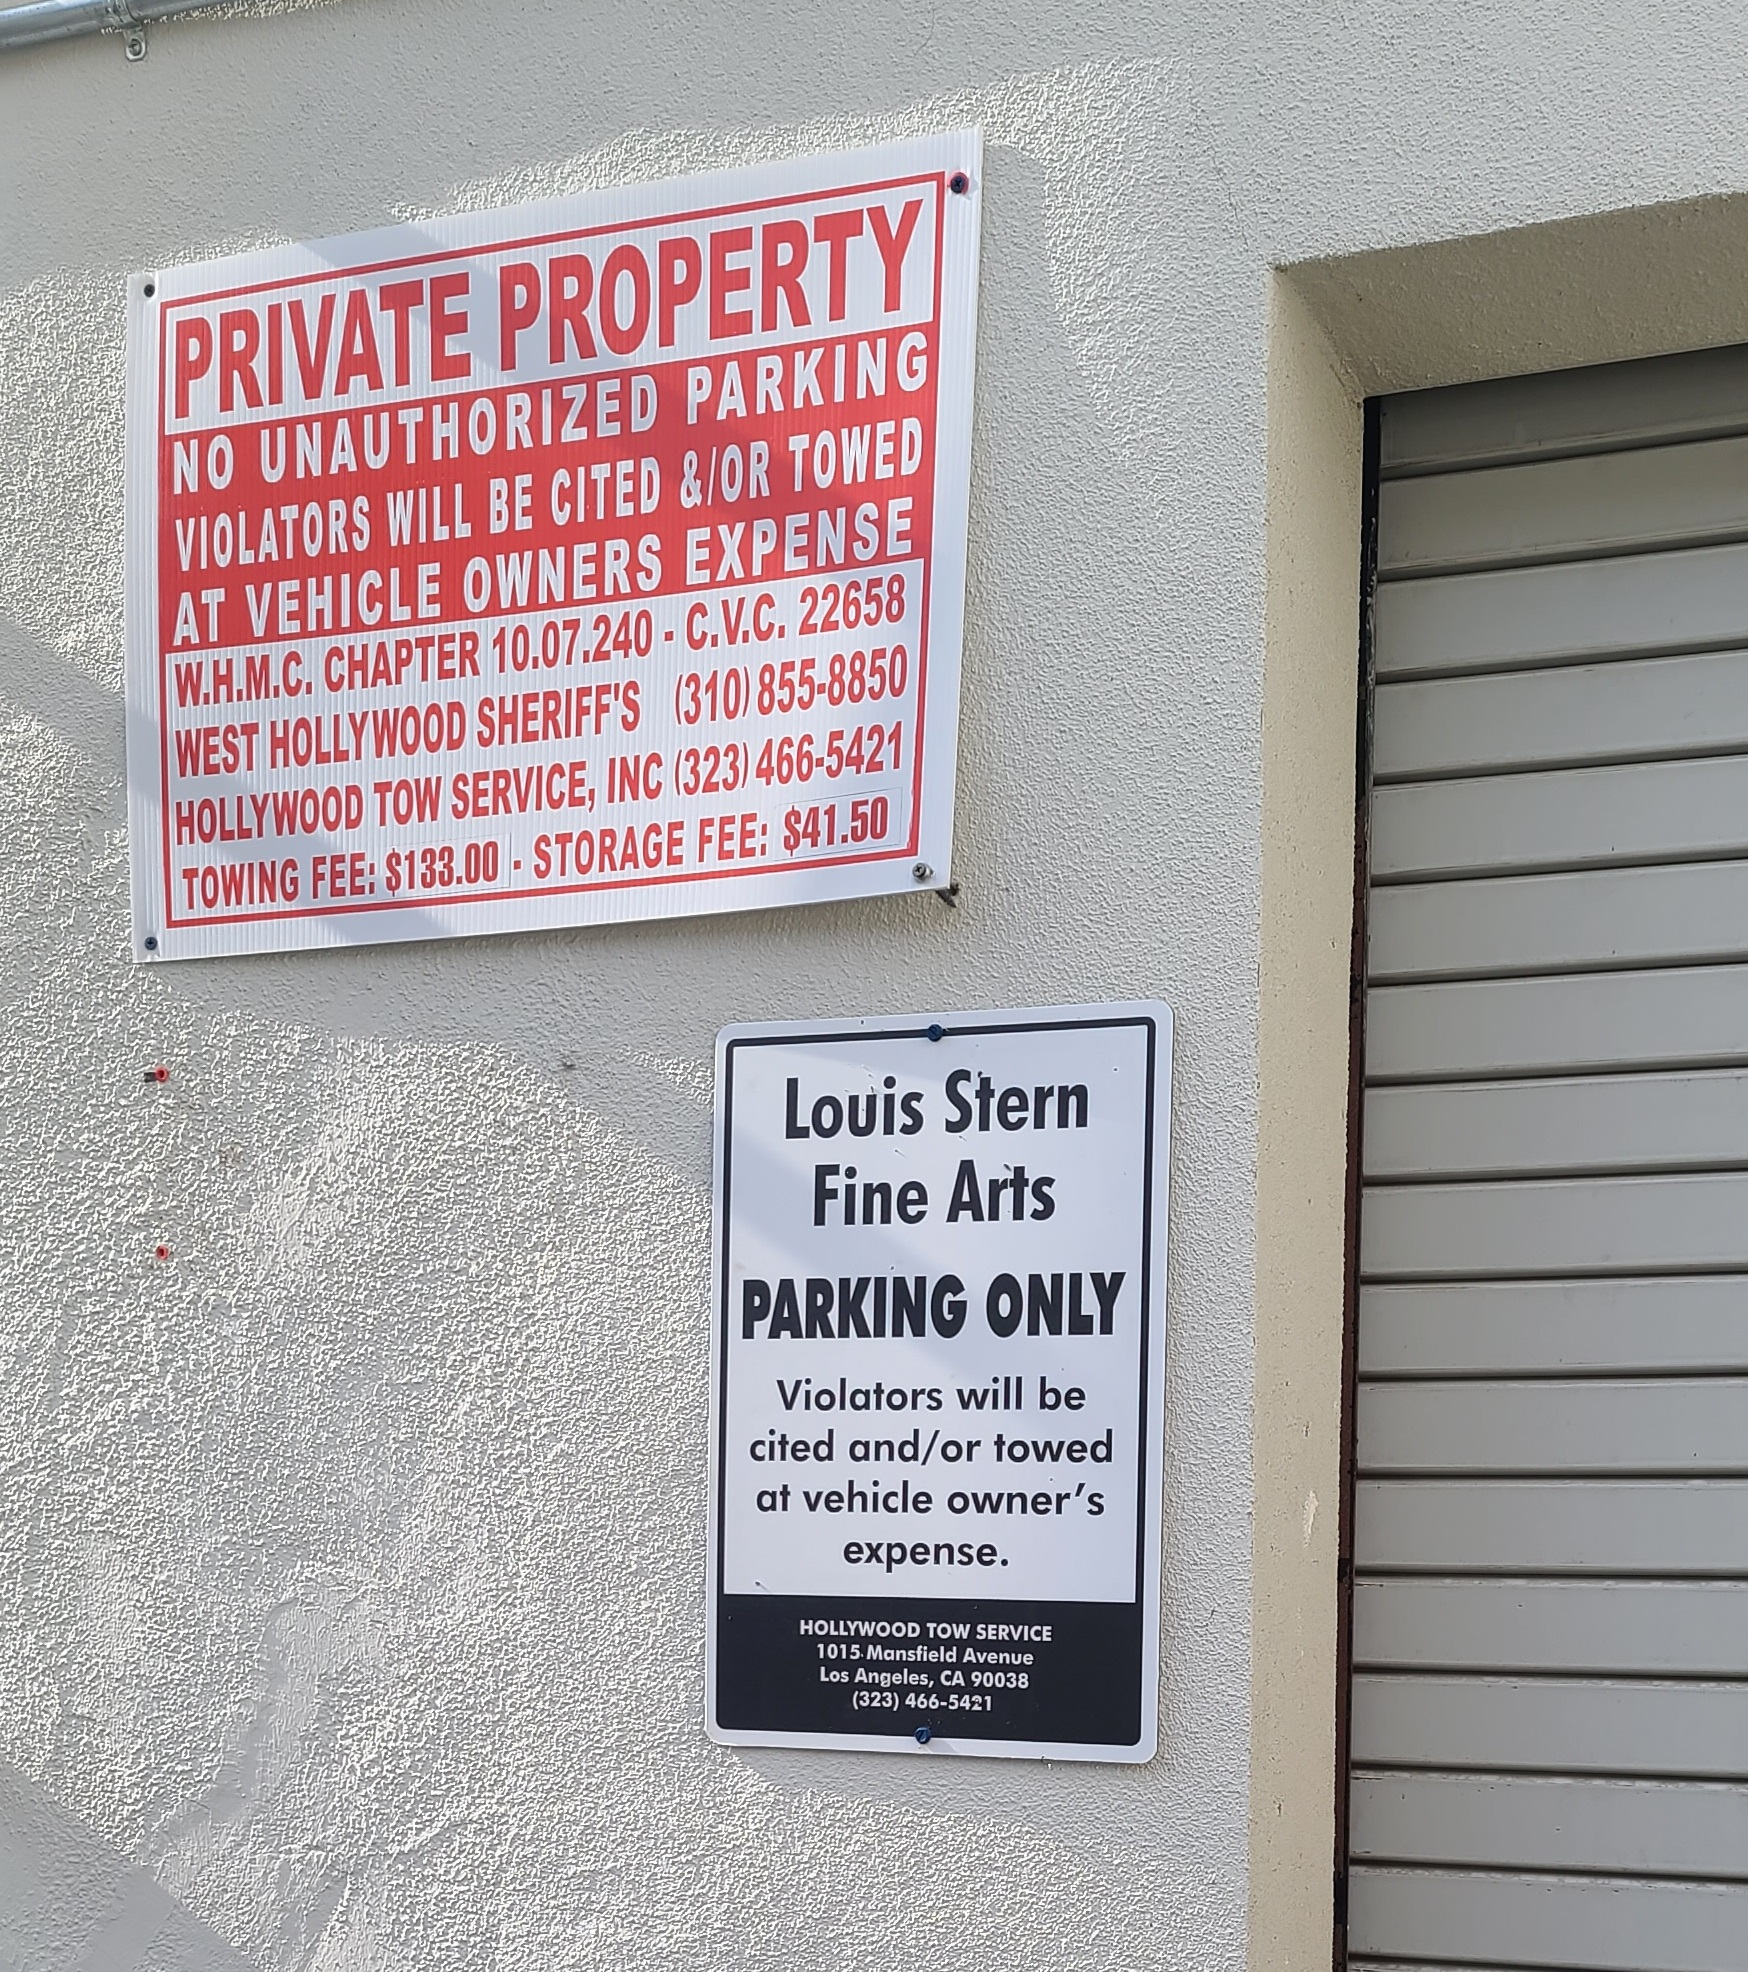 These are the parking lot signs we fabricated and installed for Faring in West Hollywood.